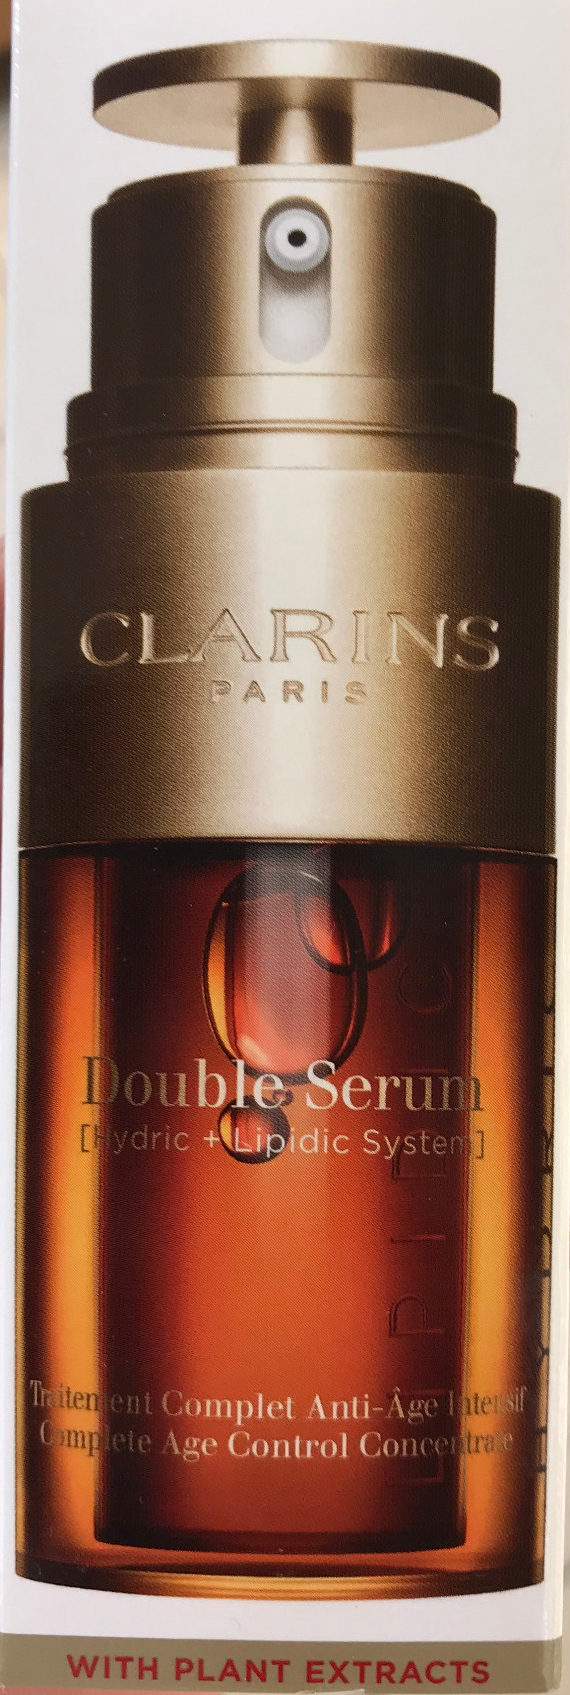 Double Serum - Product